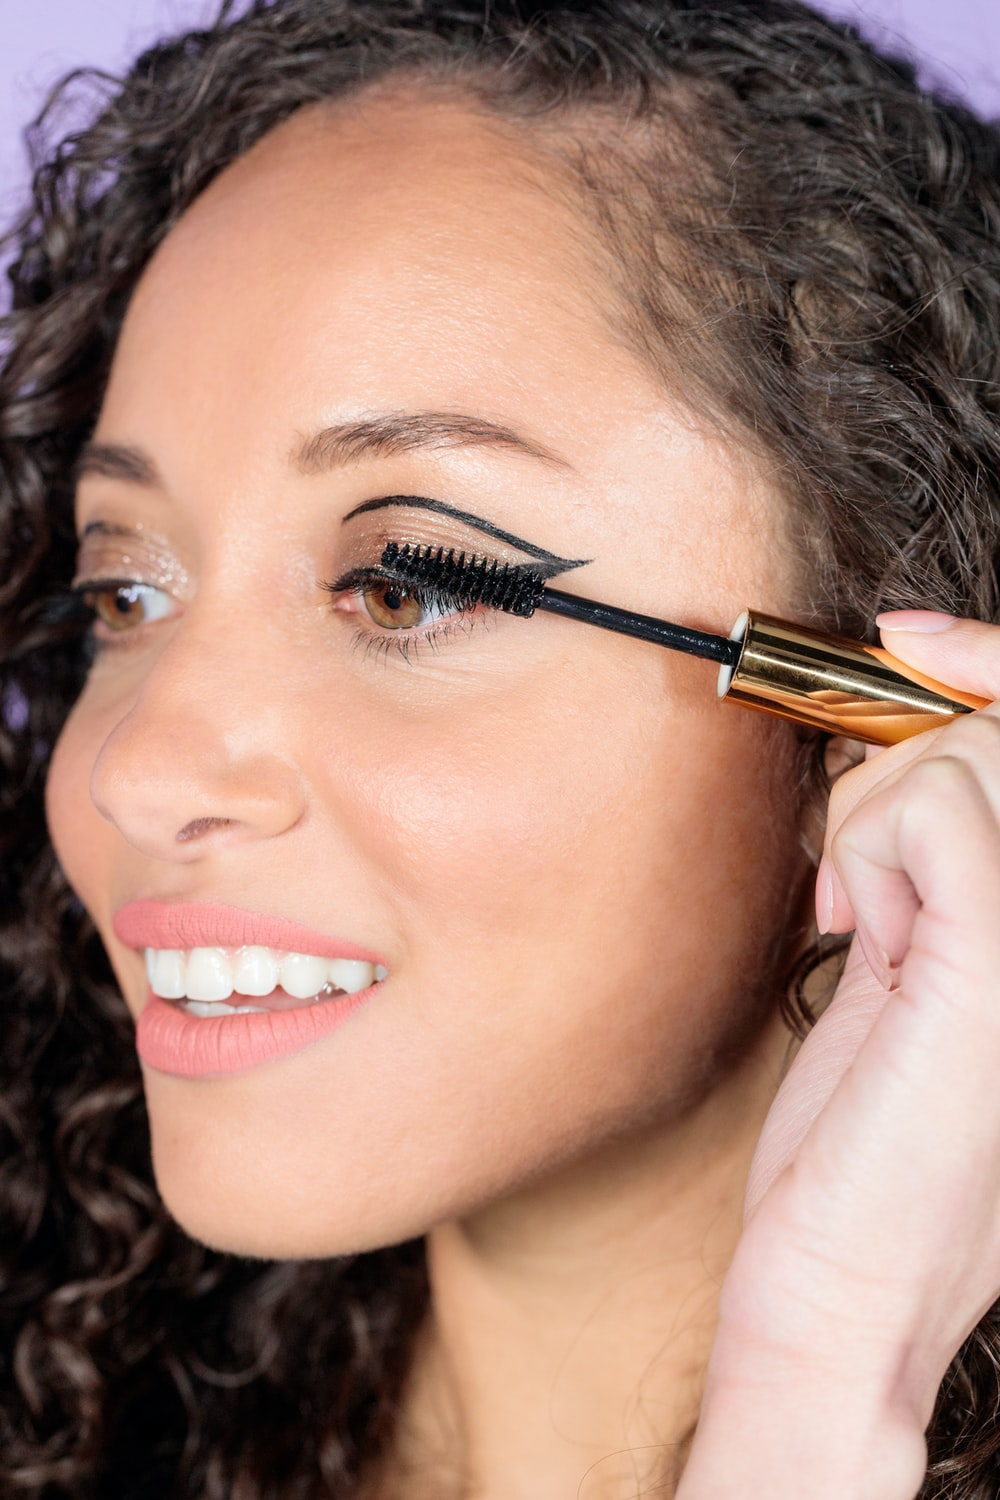 woman with black hair holding brown and black makeup brush